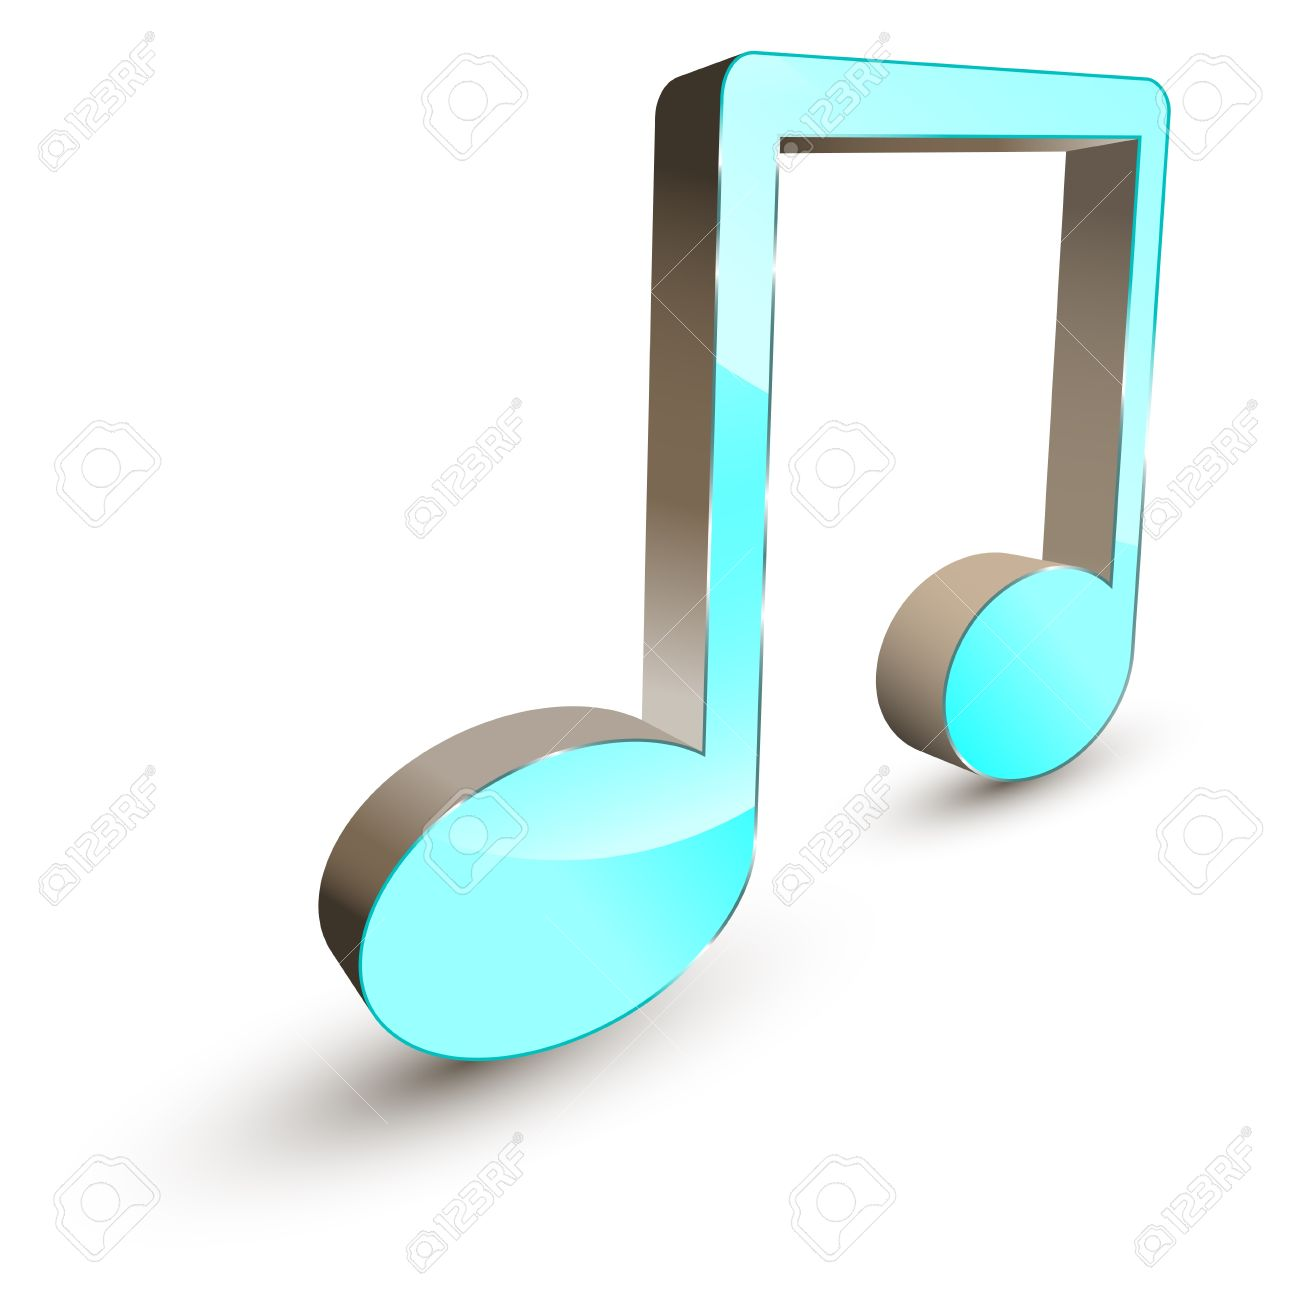 3d Music Note Symbol Royalty Free Cliparts Vectors And Stock